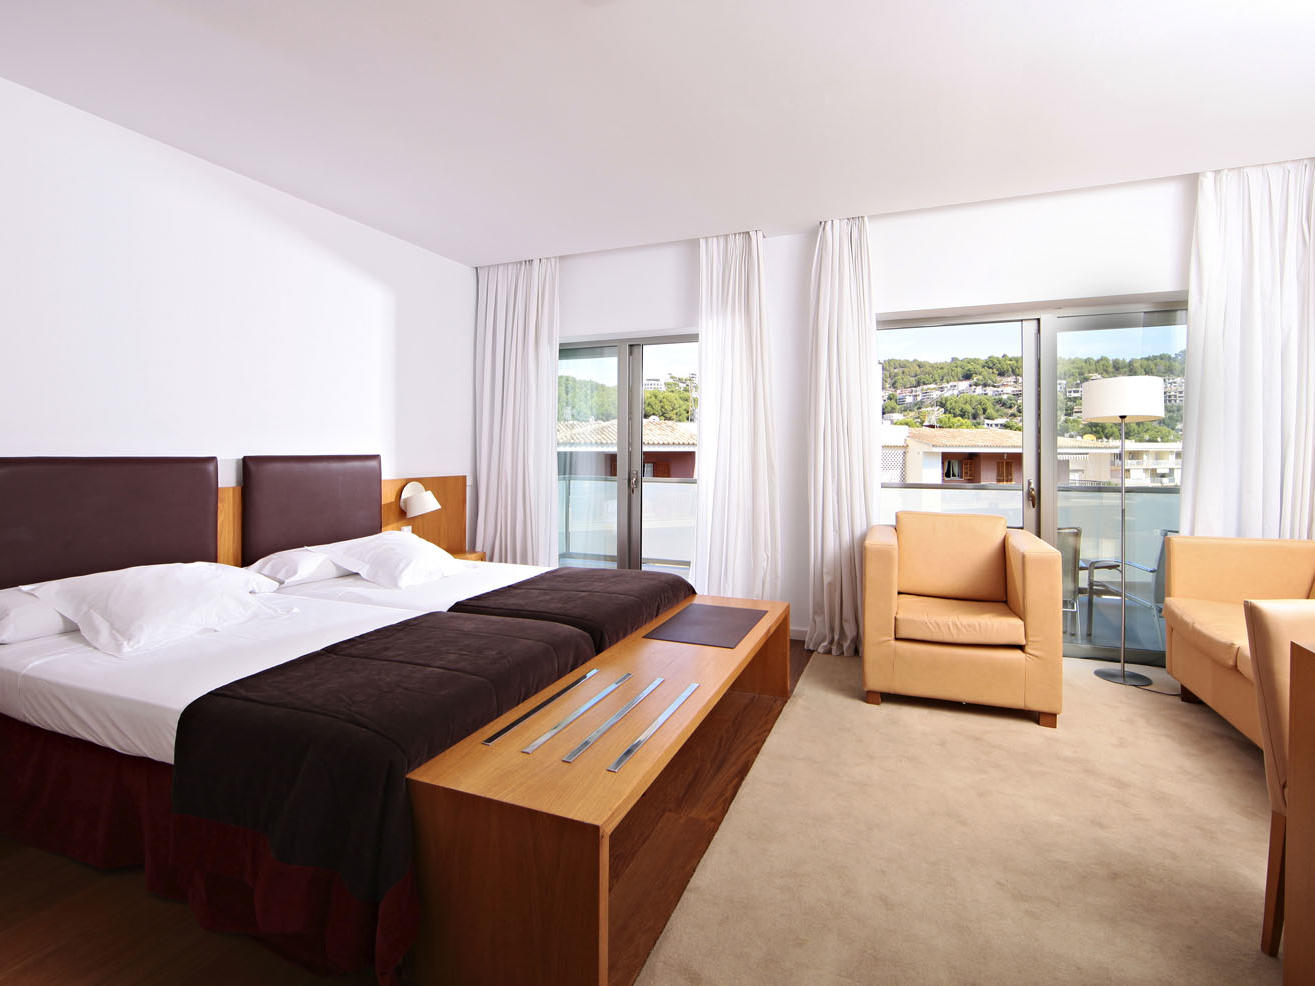 Superior room at Aimia Hotel in Port de Sóller, Majorca